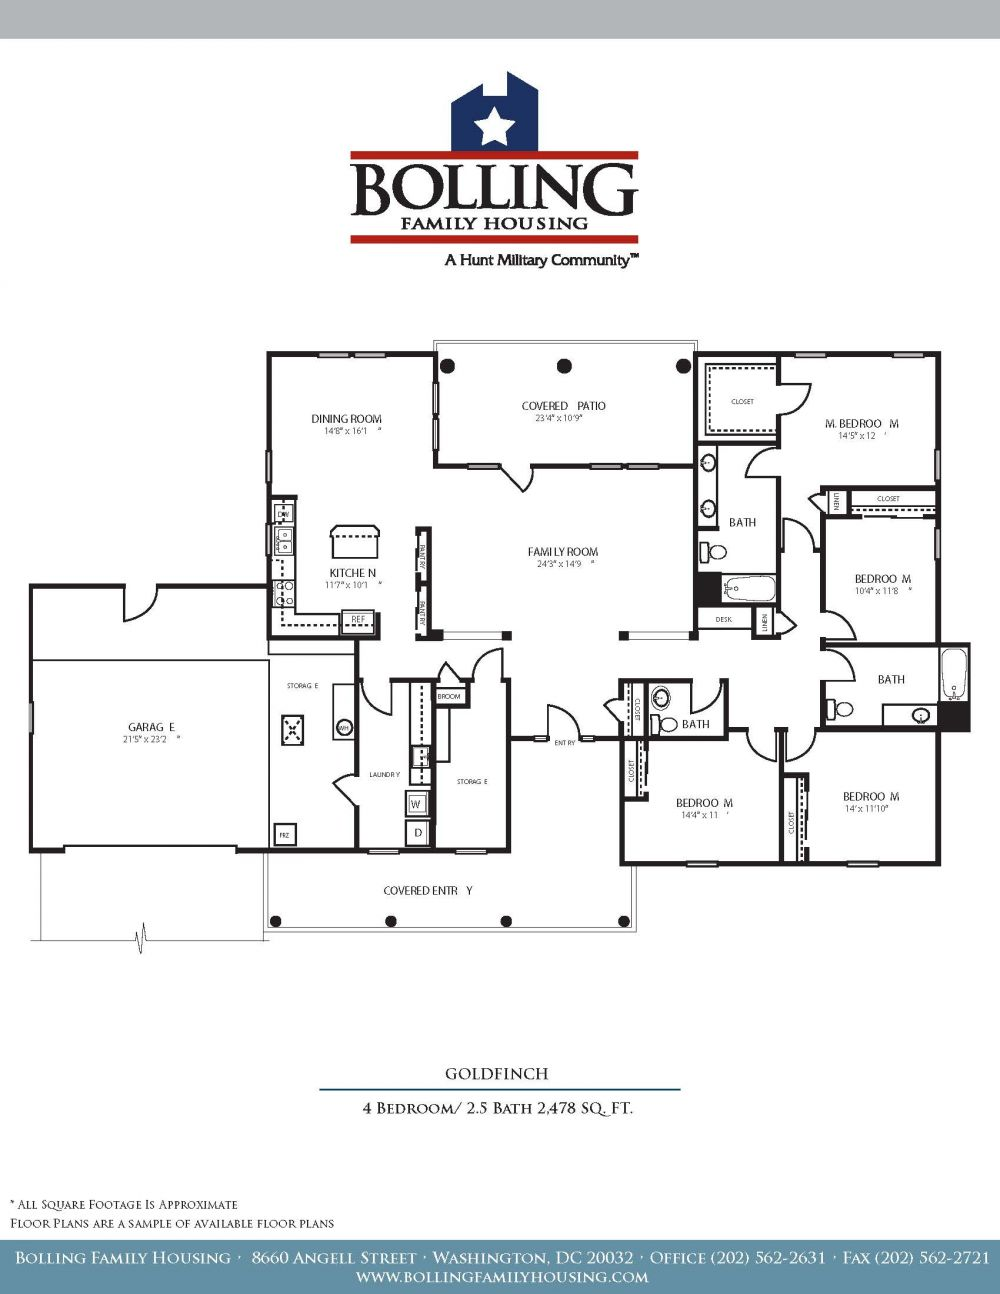 Hickam Afb Base Housing Floor Plans